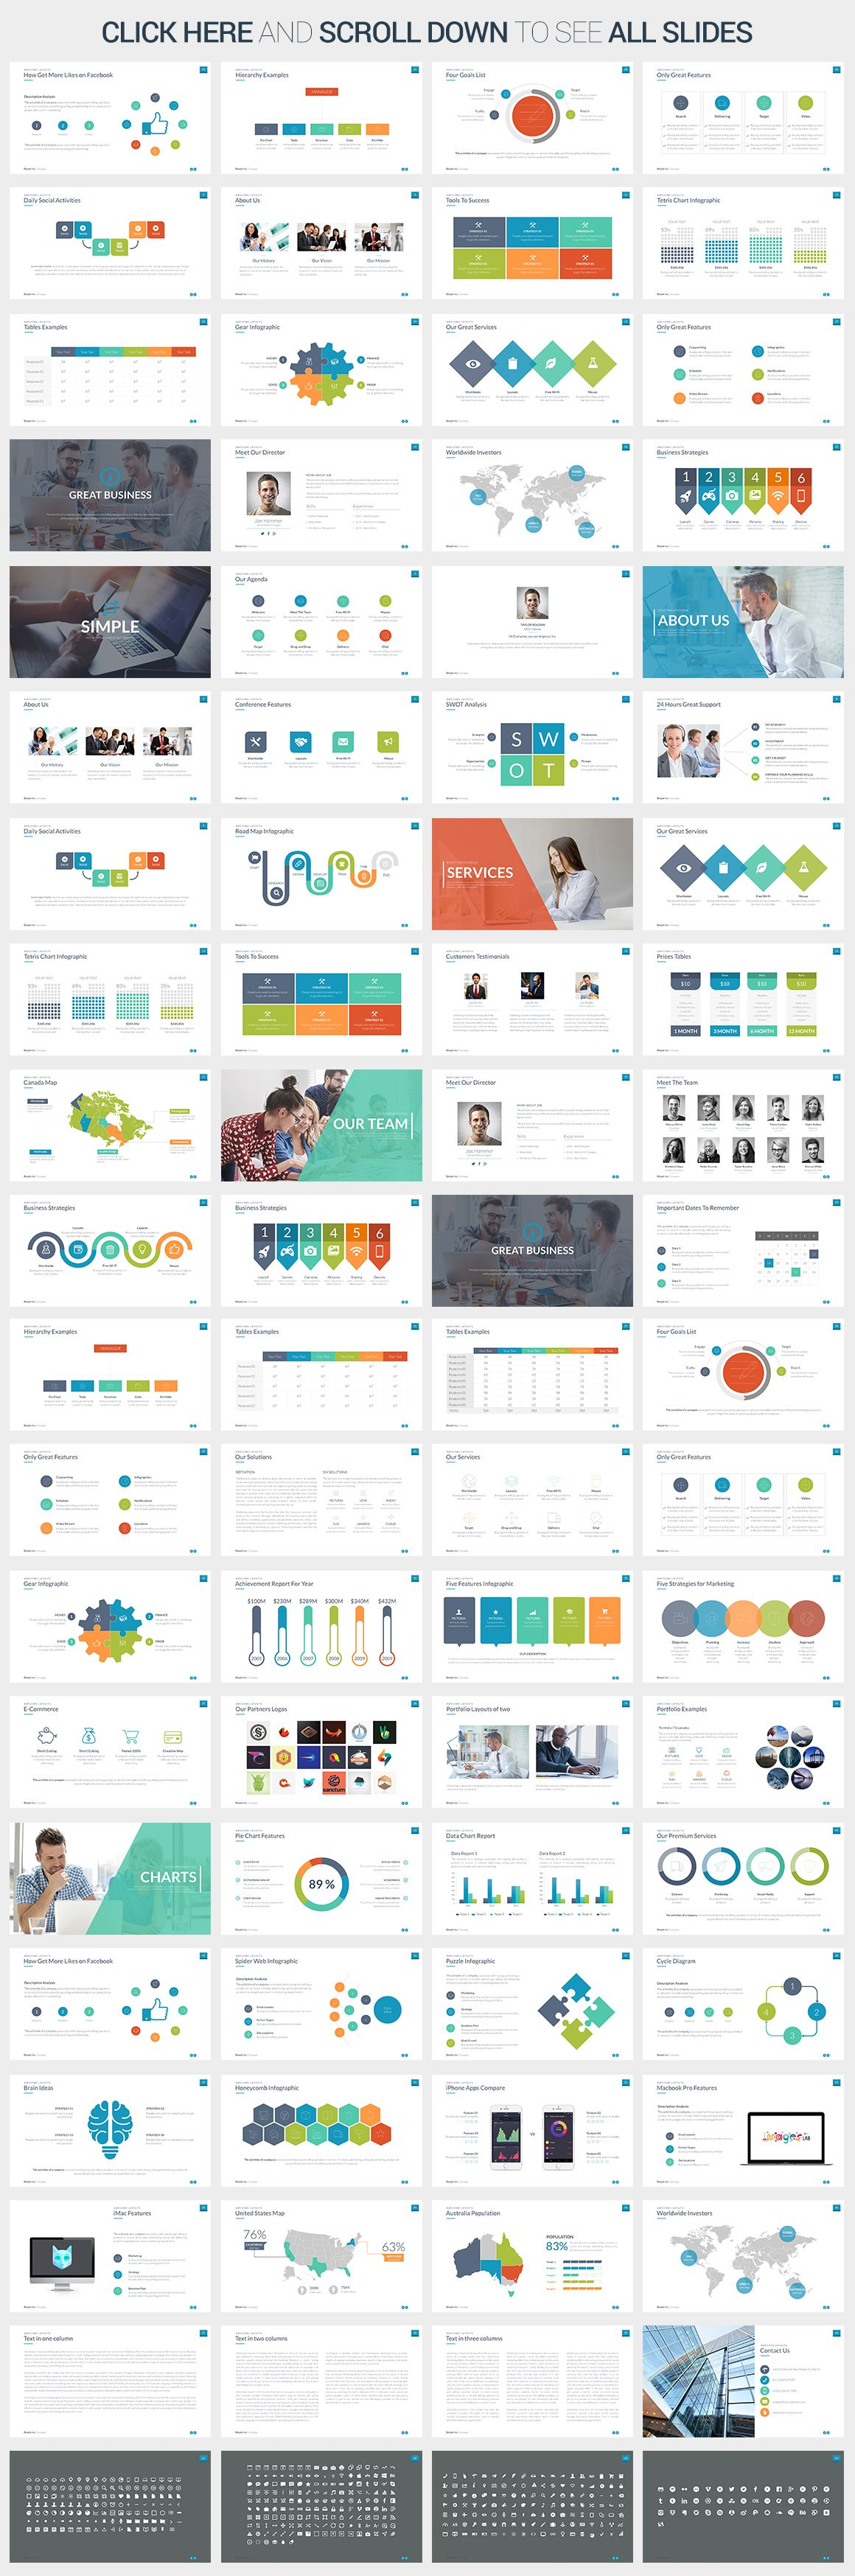 Simple powerpoint template by slidepro on creative market best simple powerpoint template by slidepro on creative market toneelgroepblik Gallery